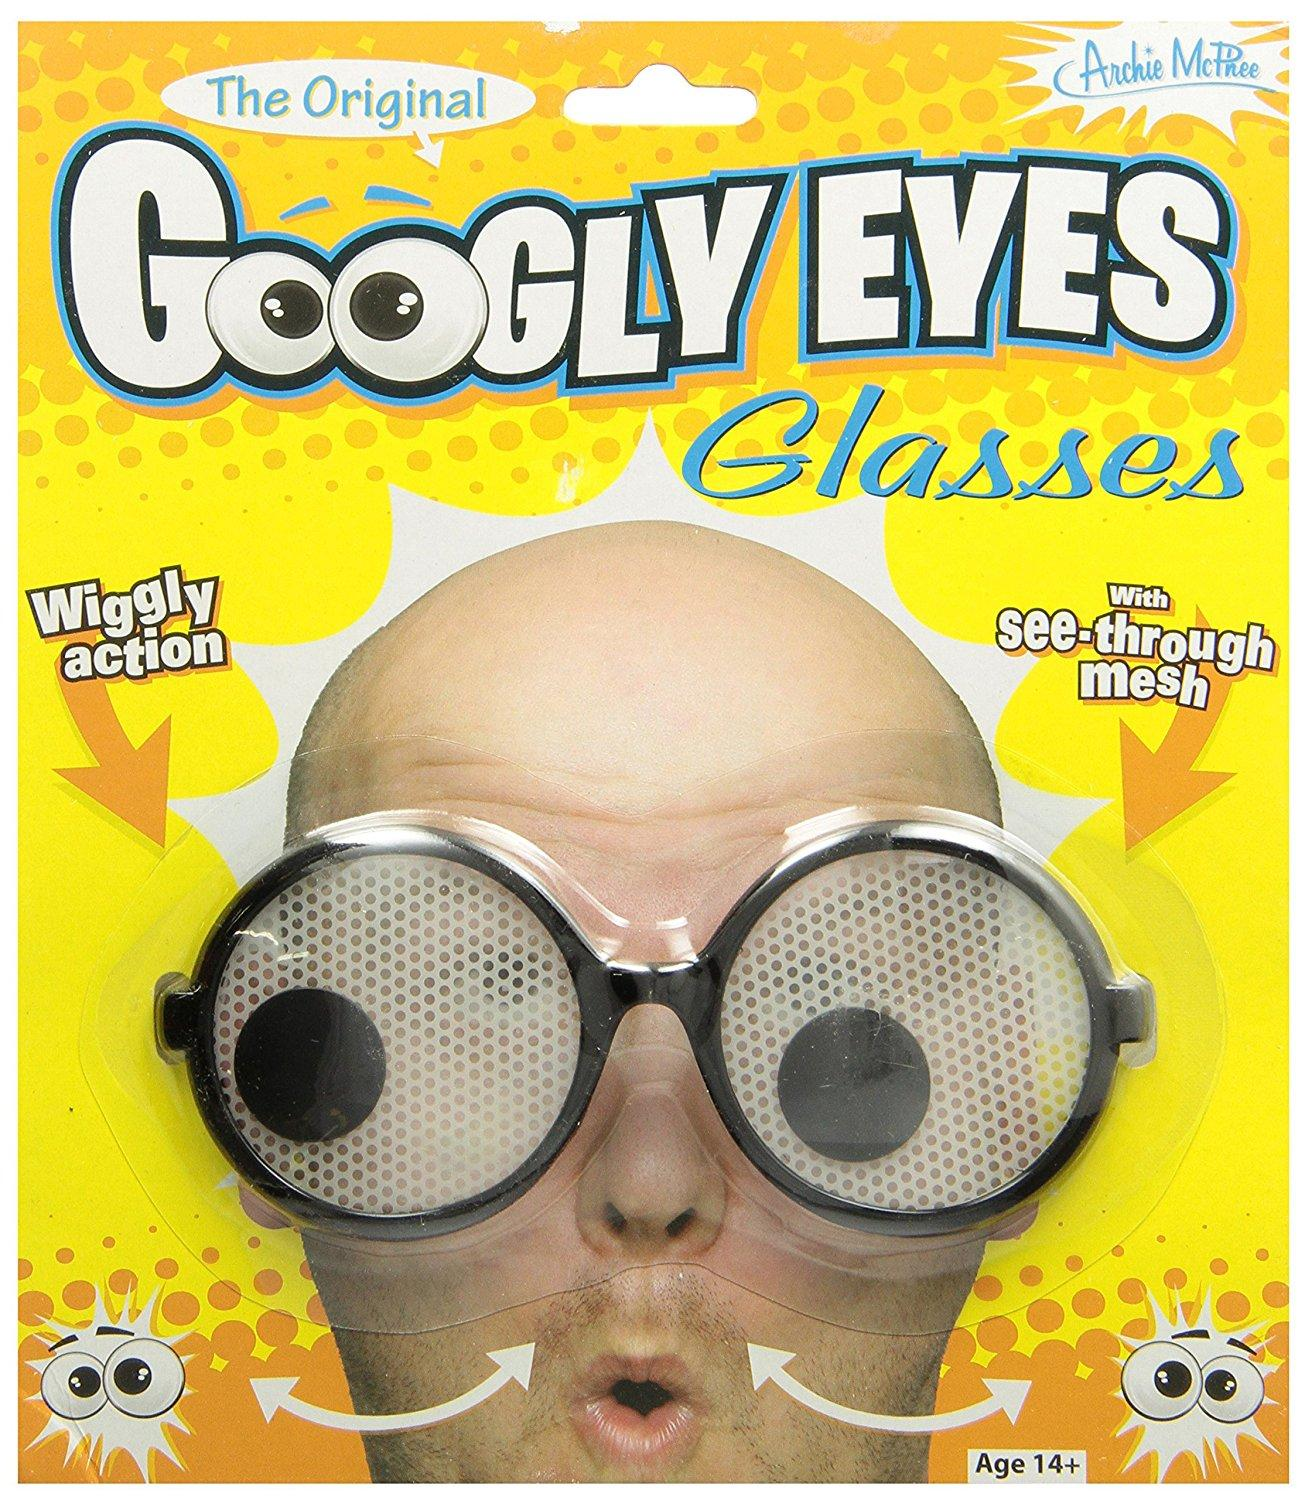 2017 New Fun Toys GOOGLY EYES GLASSES Party Kids And Children Game